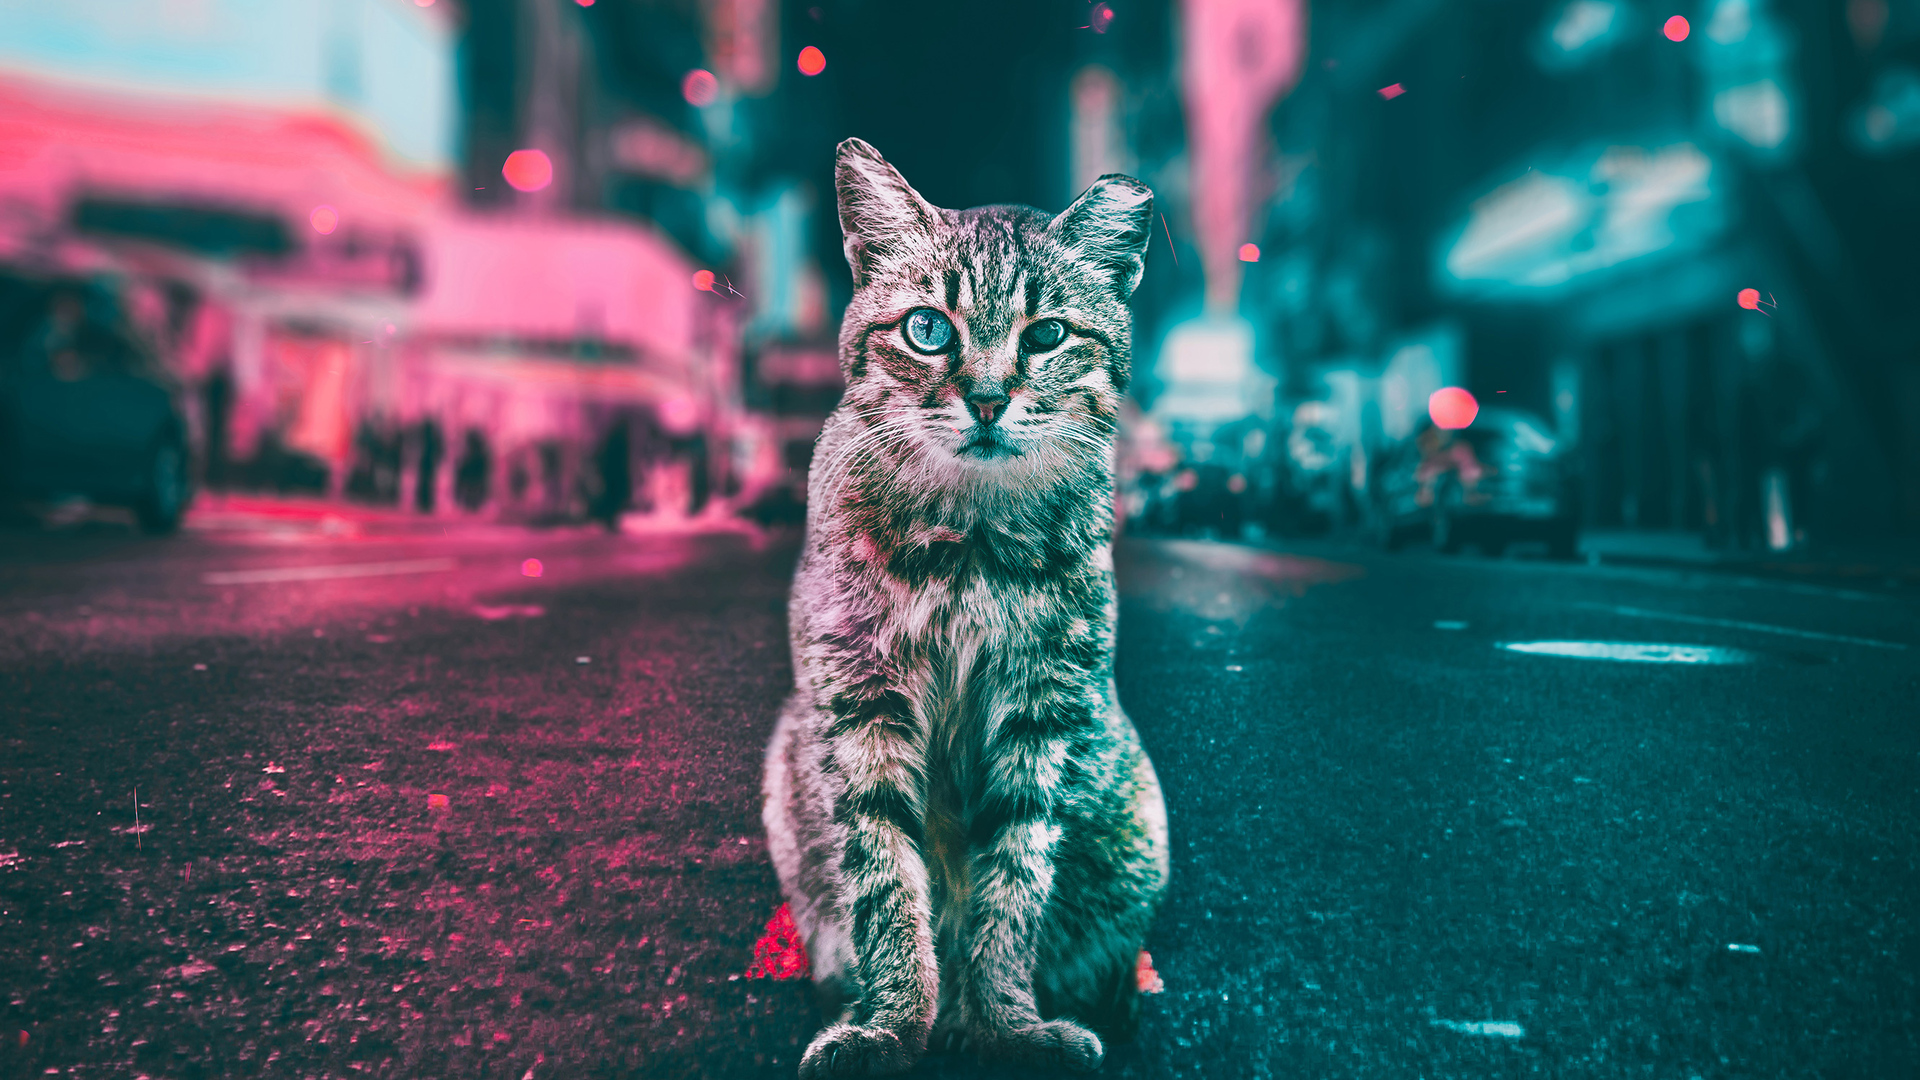 1920x1080 Cat Road Lights Laptop Full Hd 1080p Hd 4k Wallpapers Images Backgrounds Photos And Pictures